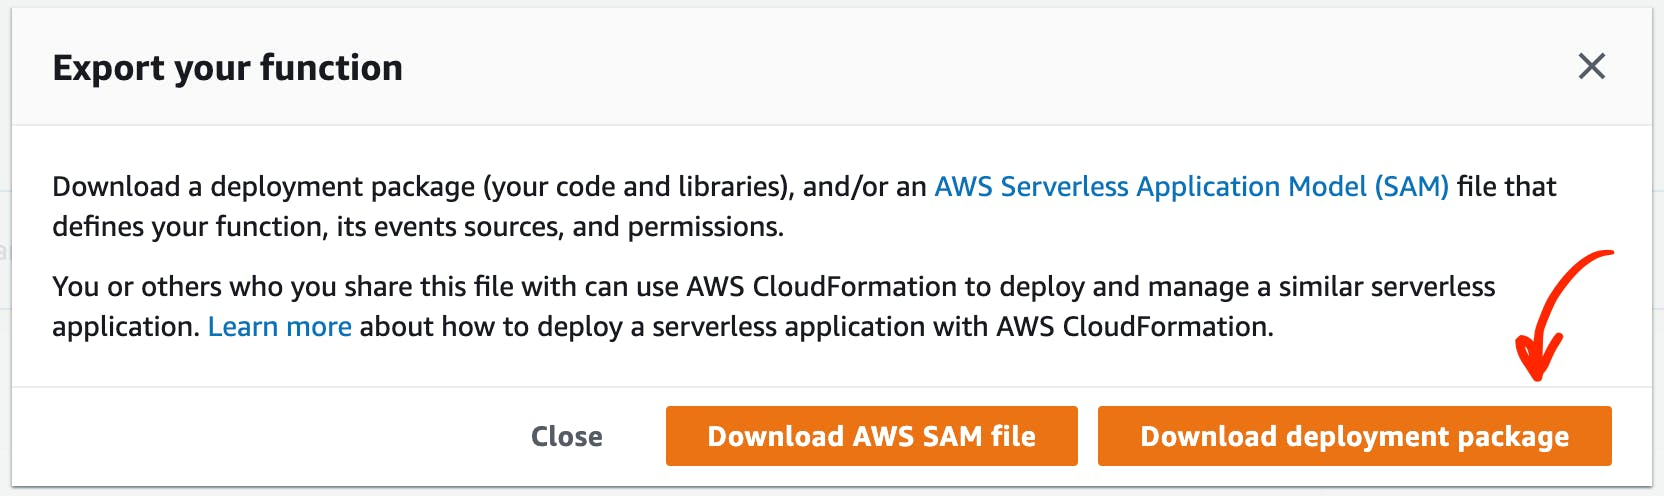 Download deployment package for lambda